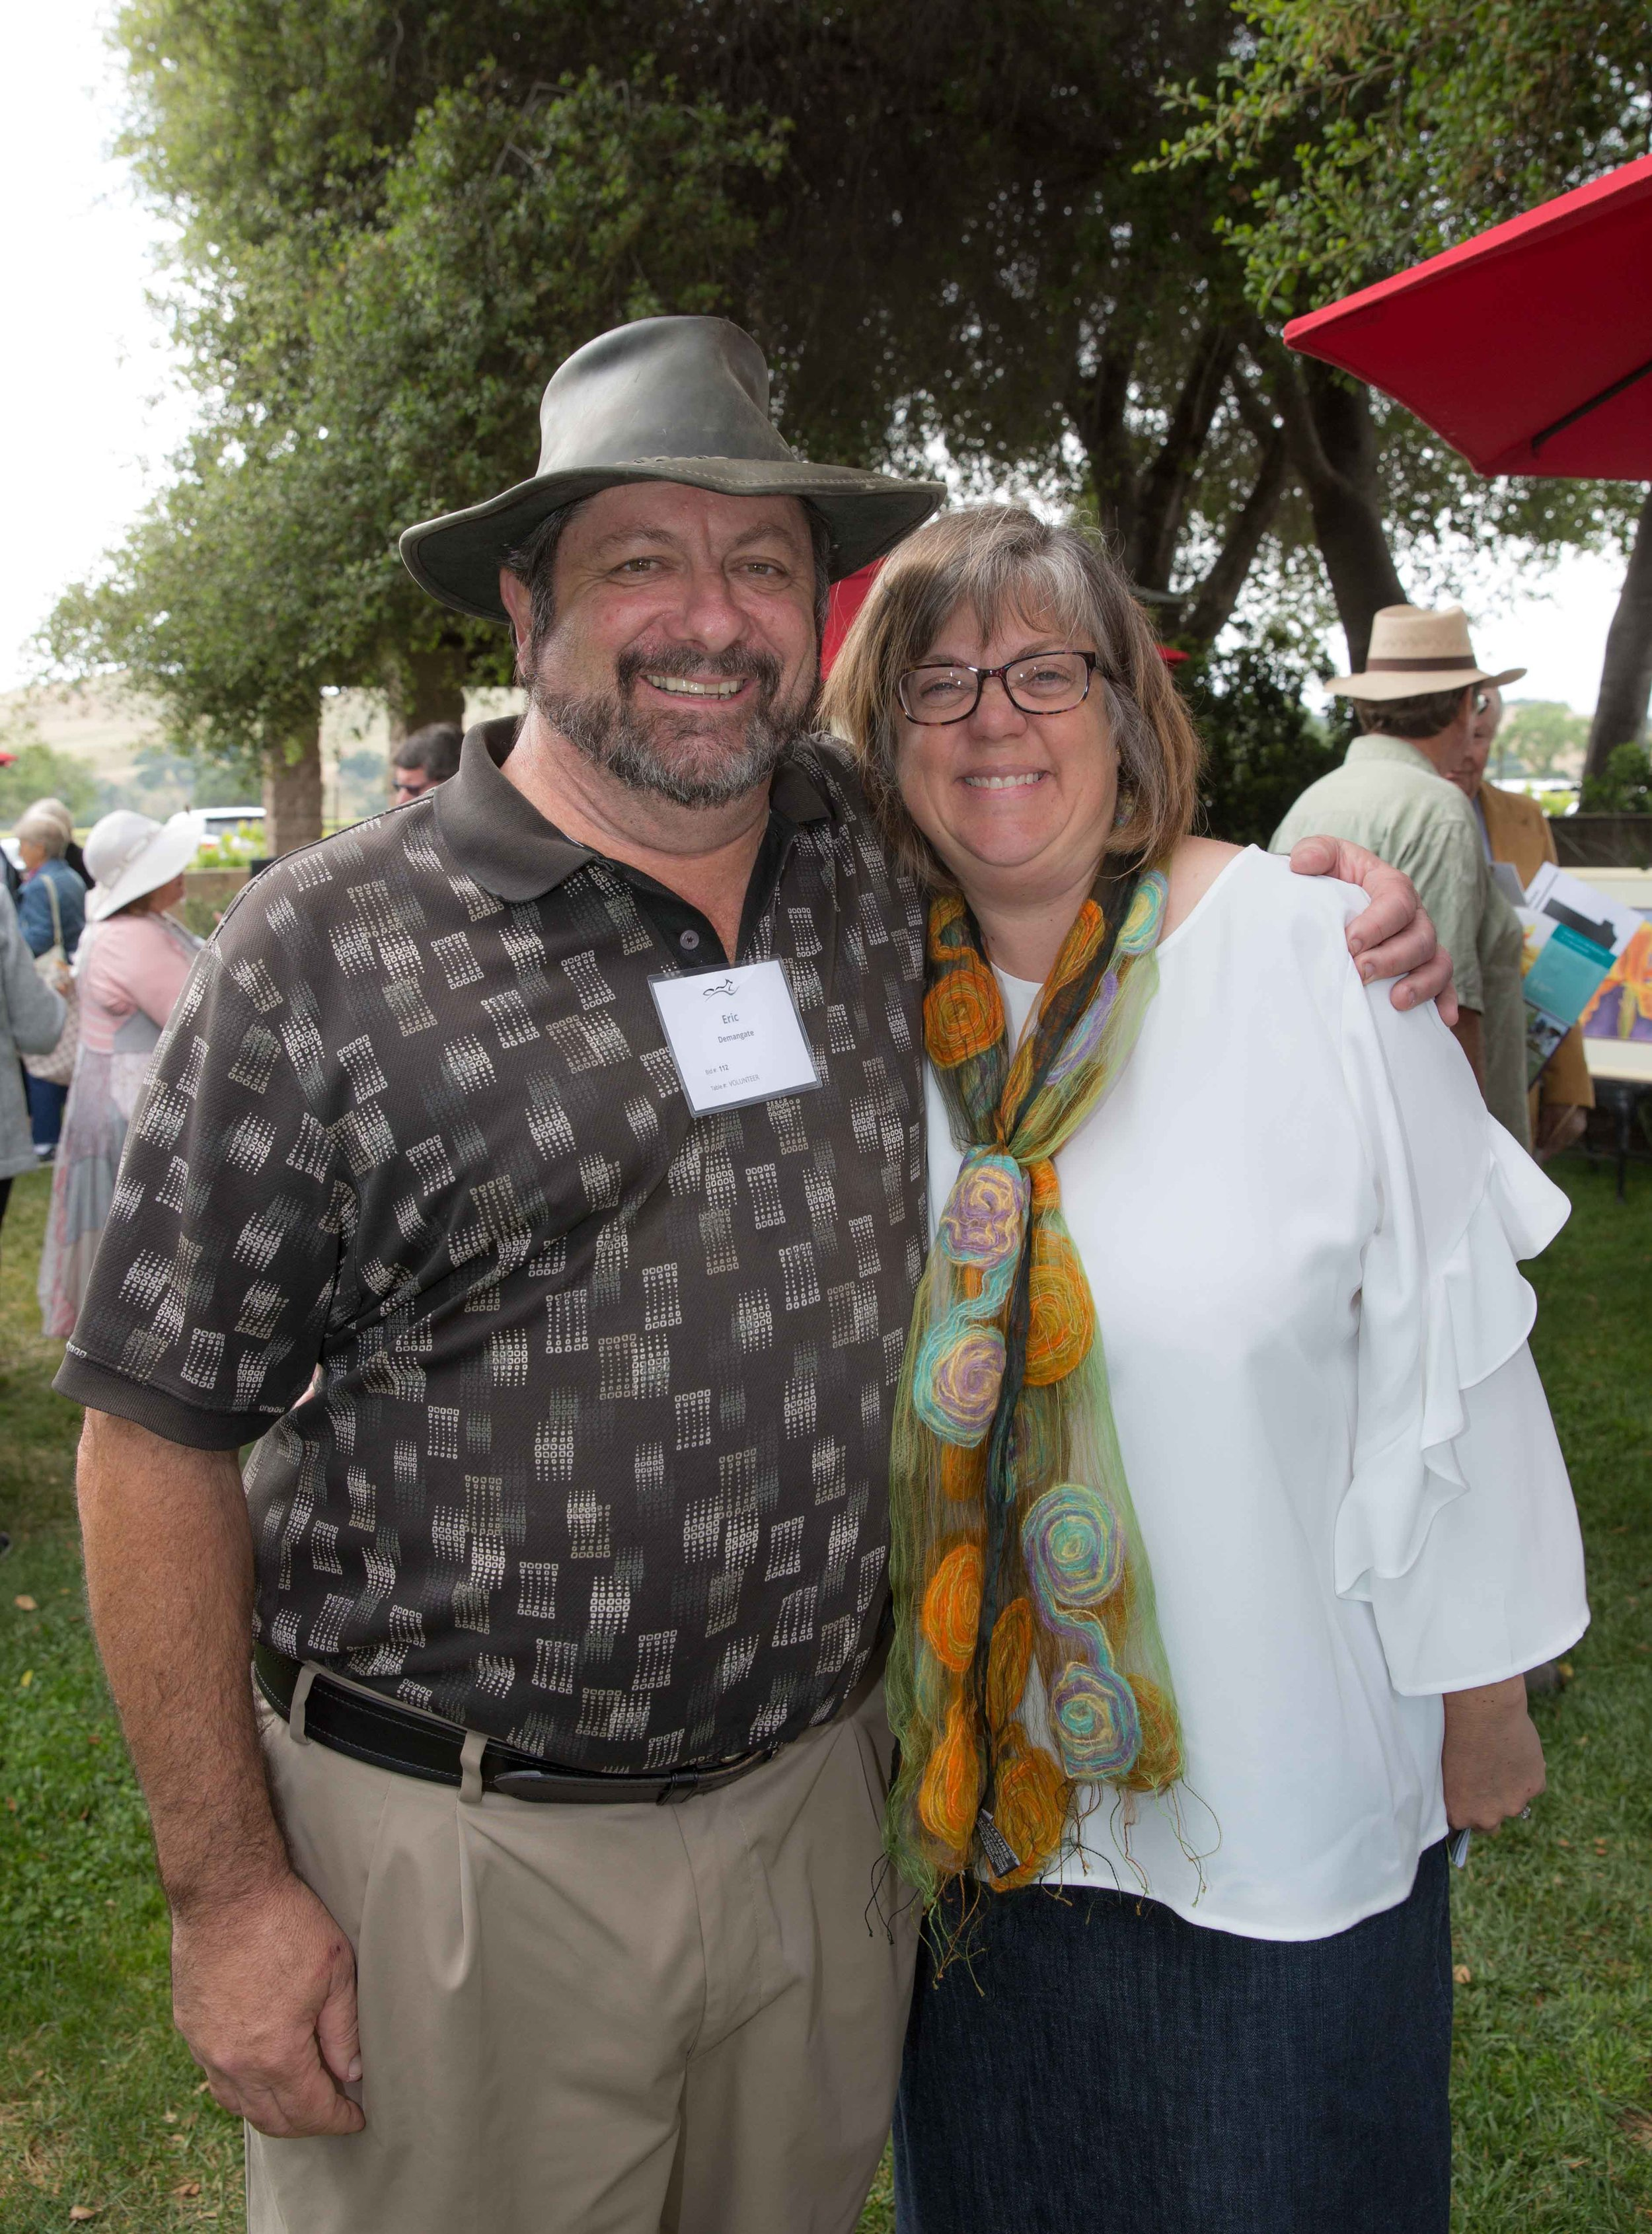 Eric Demangate and Stacey Otte-Demangate, Executive Director